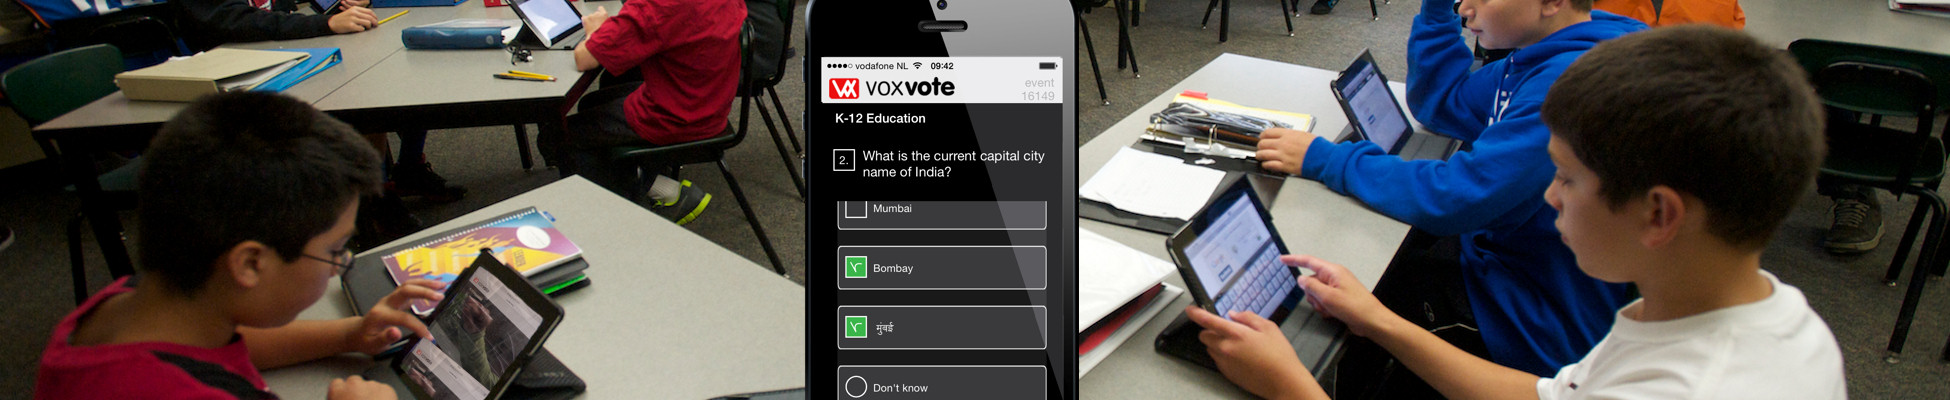 K12 students using VoxVote